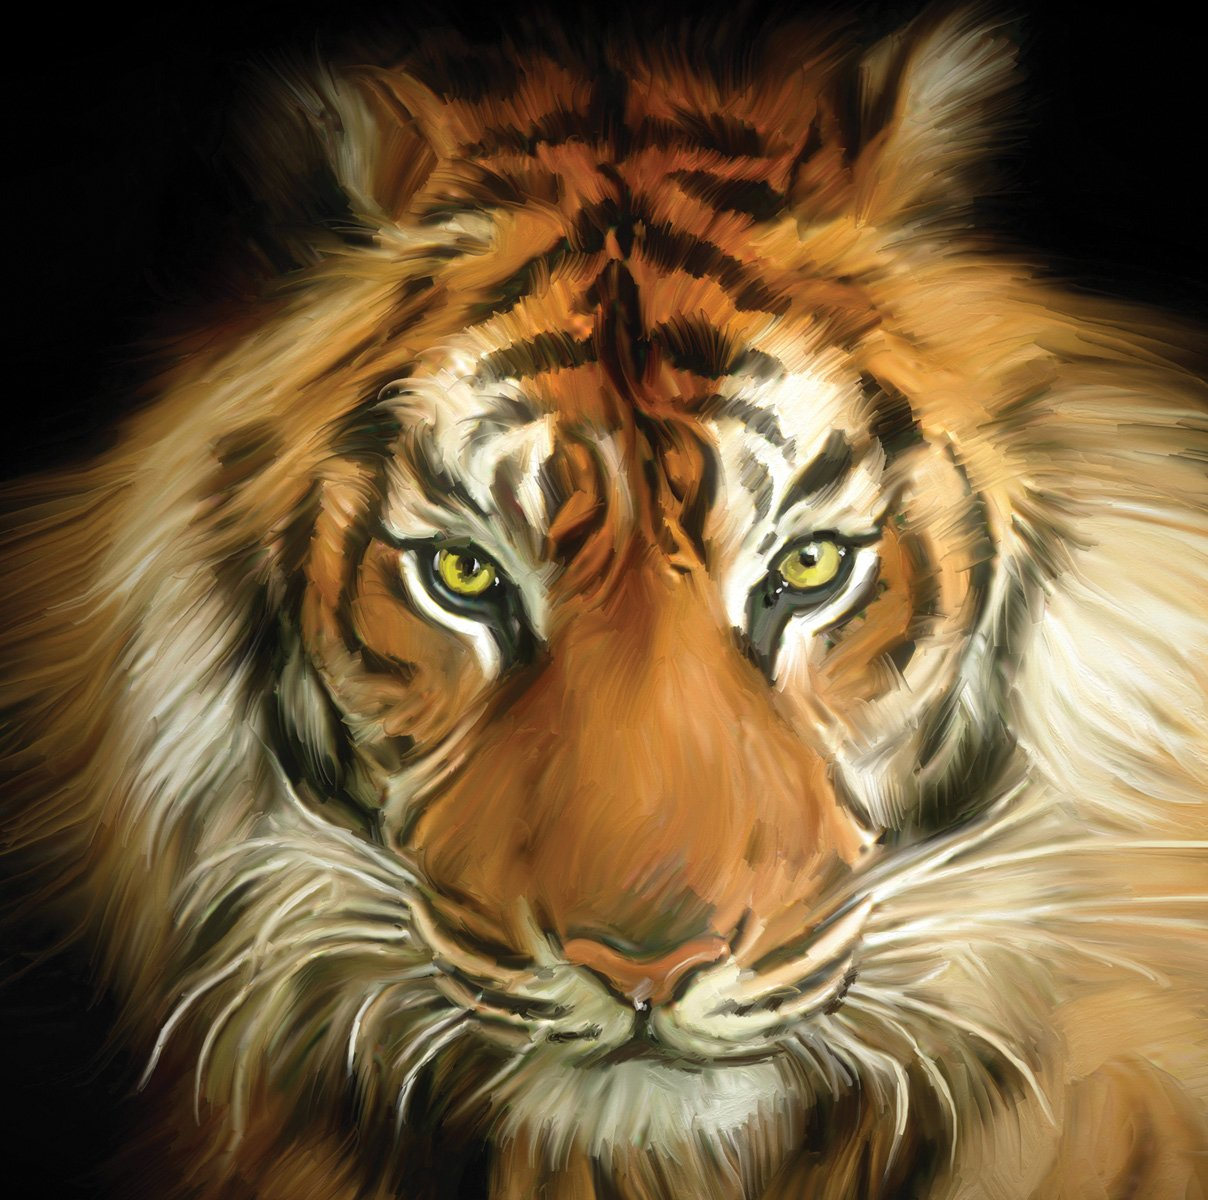 JP London SQM0010PS Peel and Stick Removable Wall Decal Sticker Mural Tiger Face At 6 High By 6 Wide